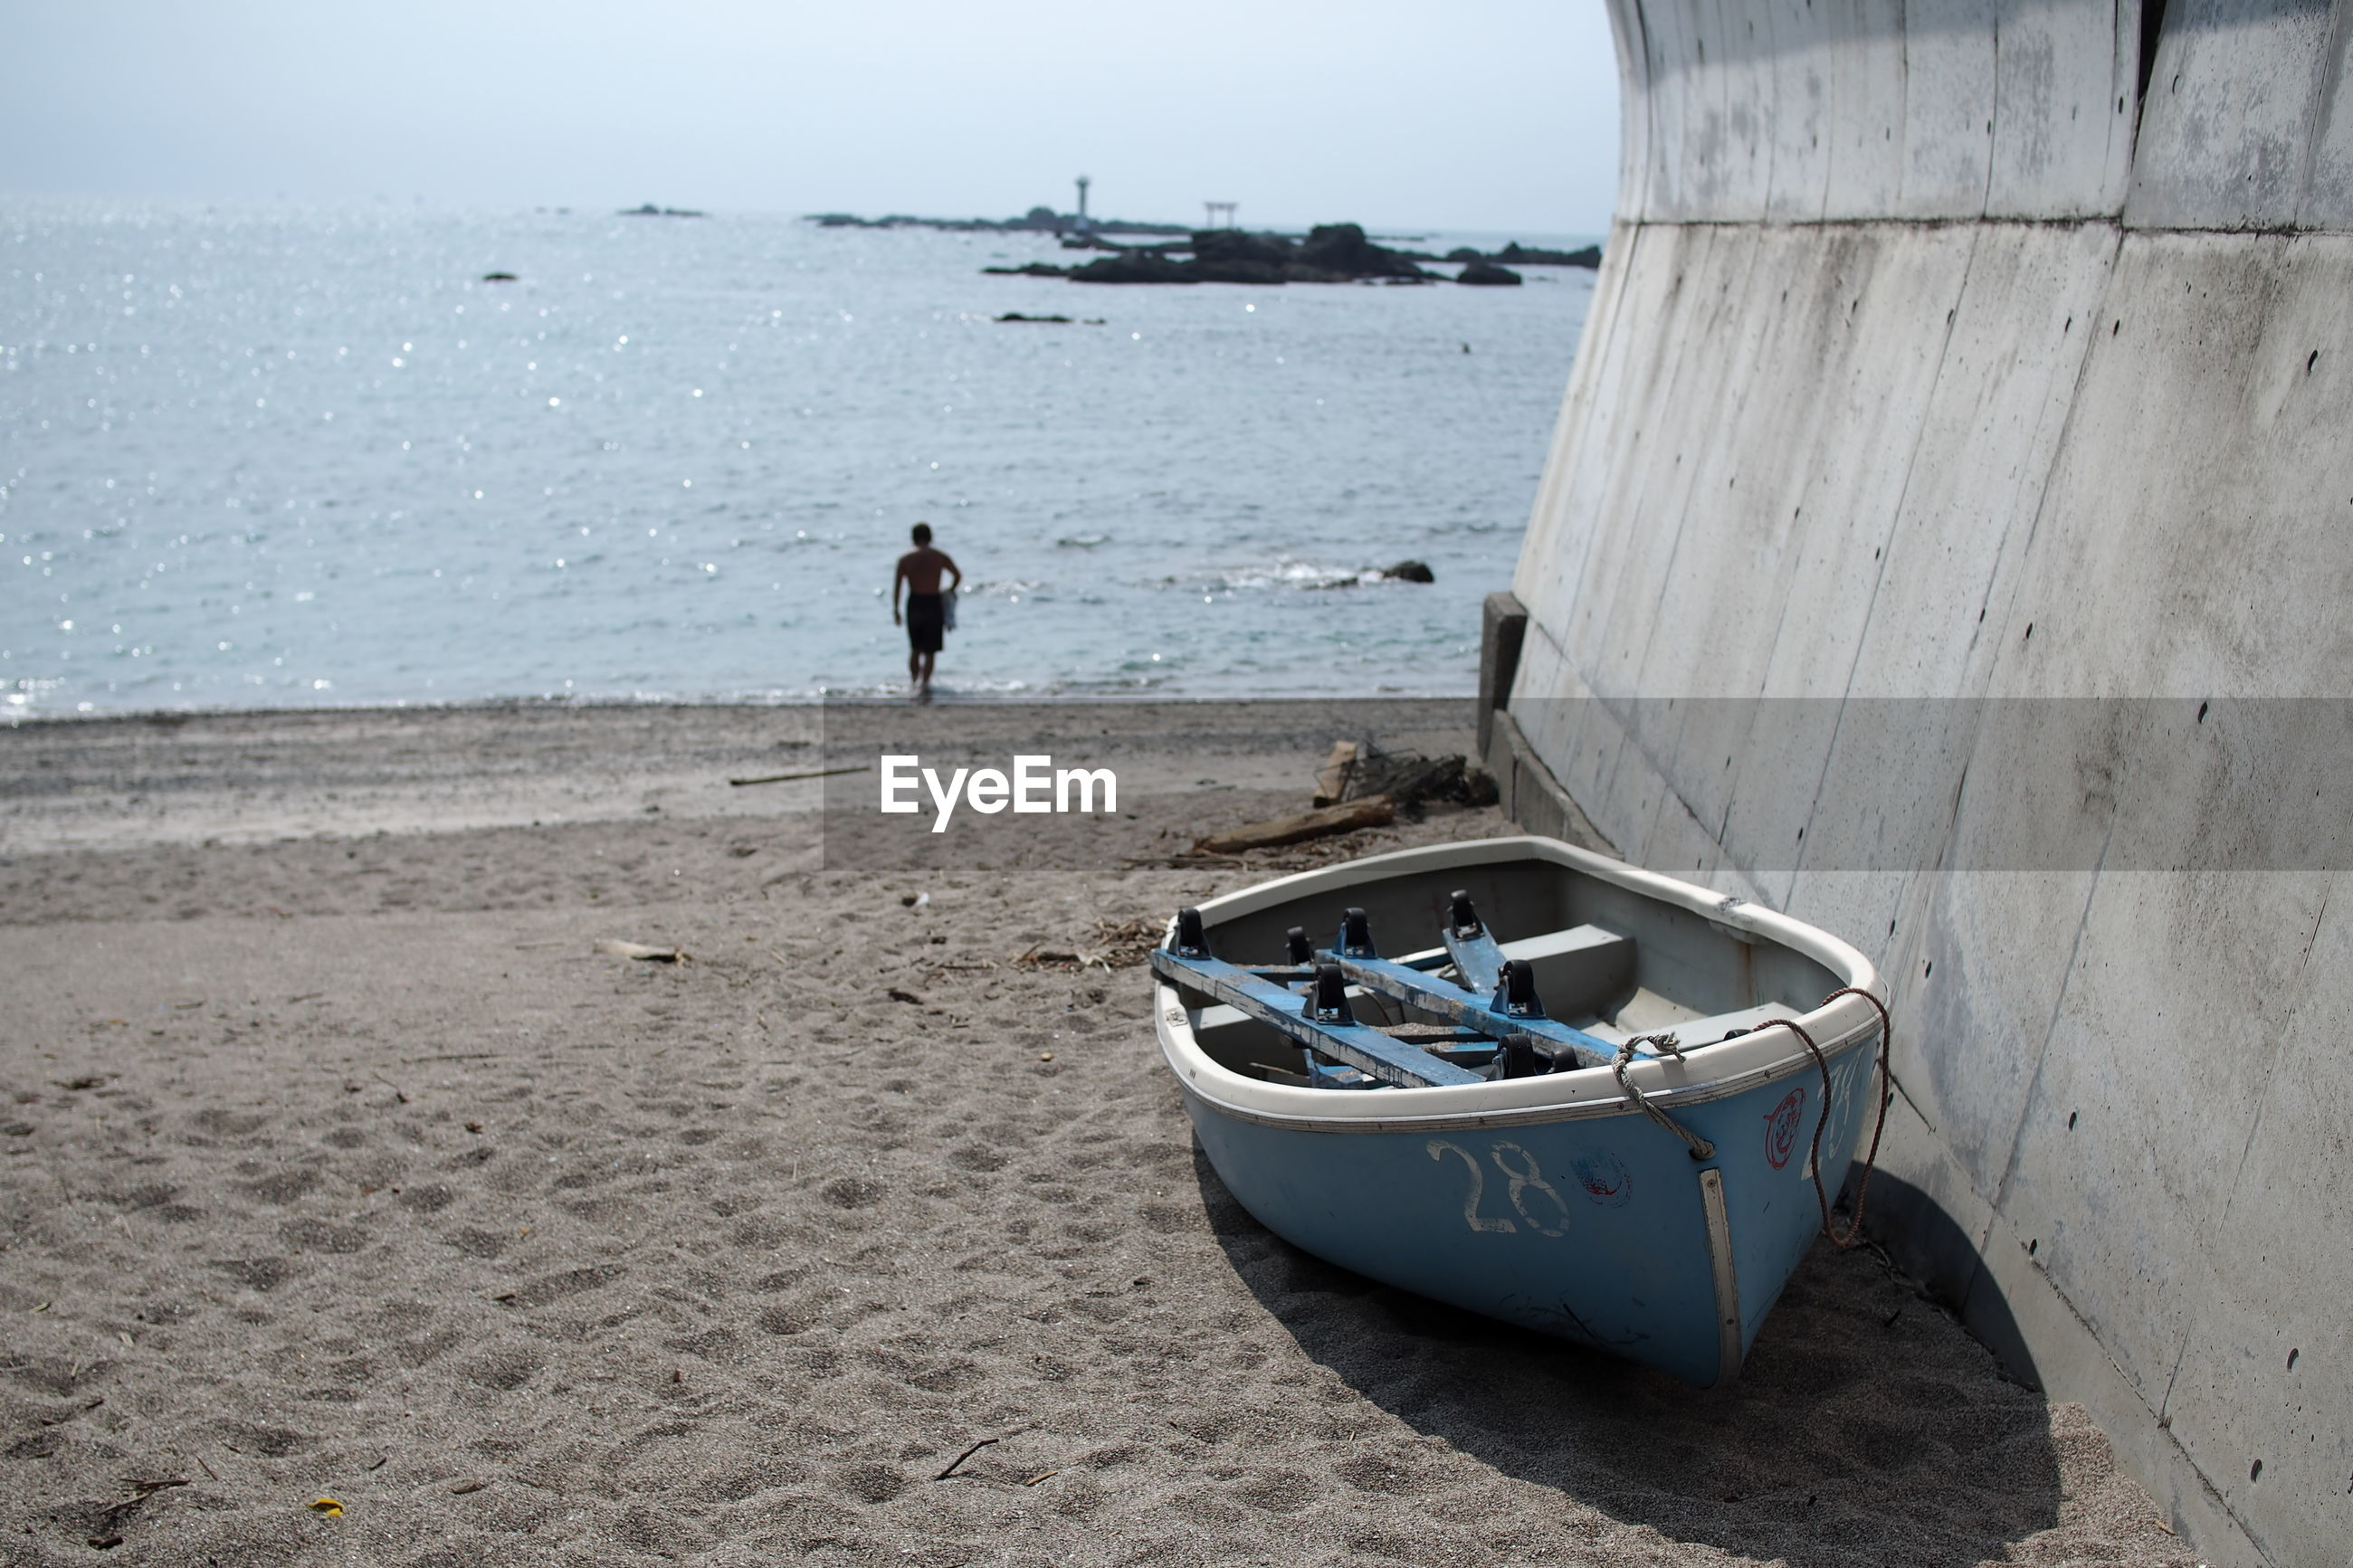 Moored boat with shirtless man walking at beach by sea against sky